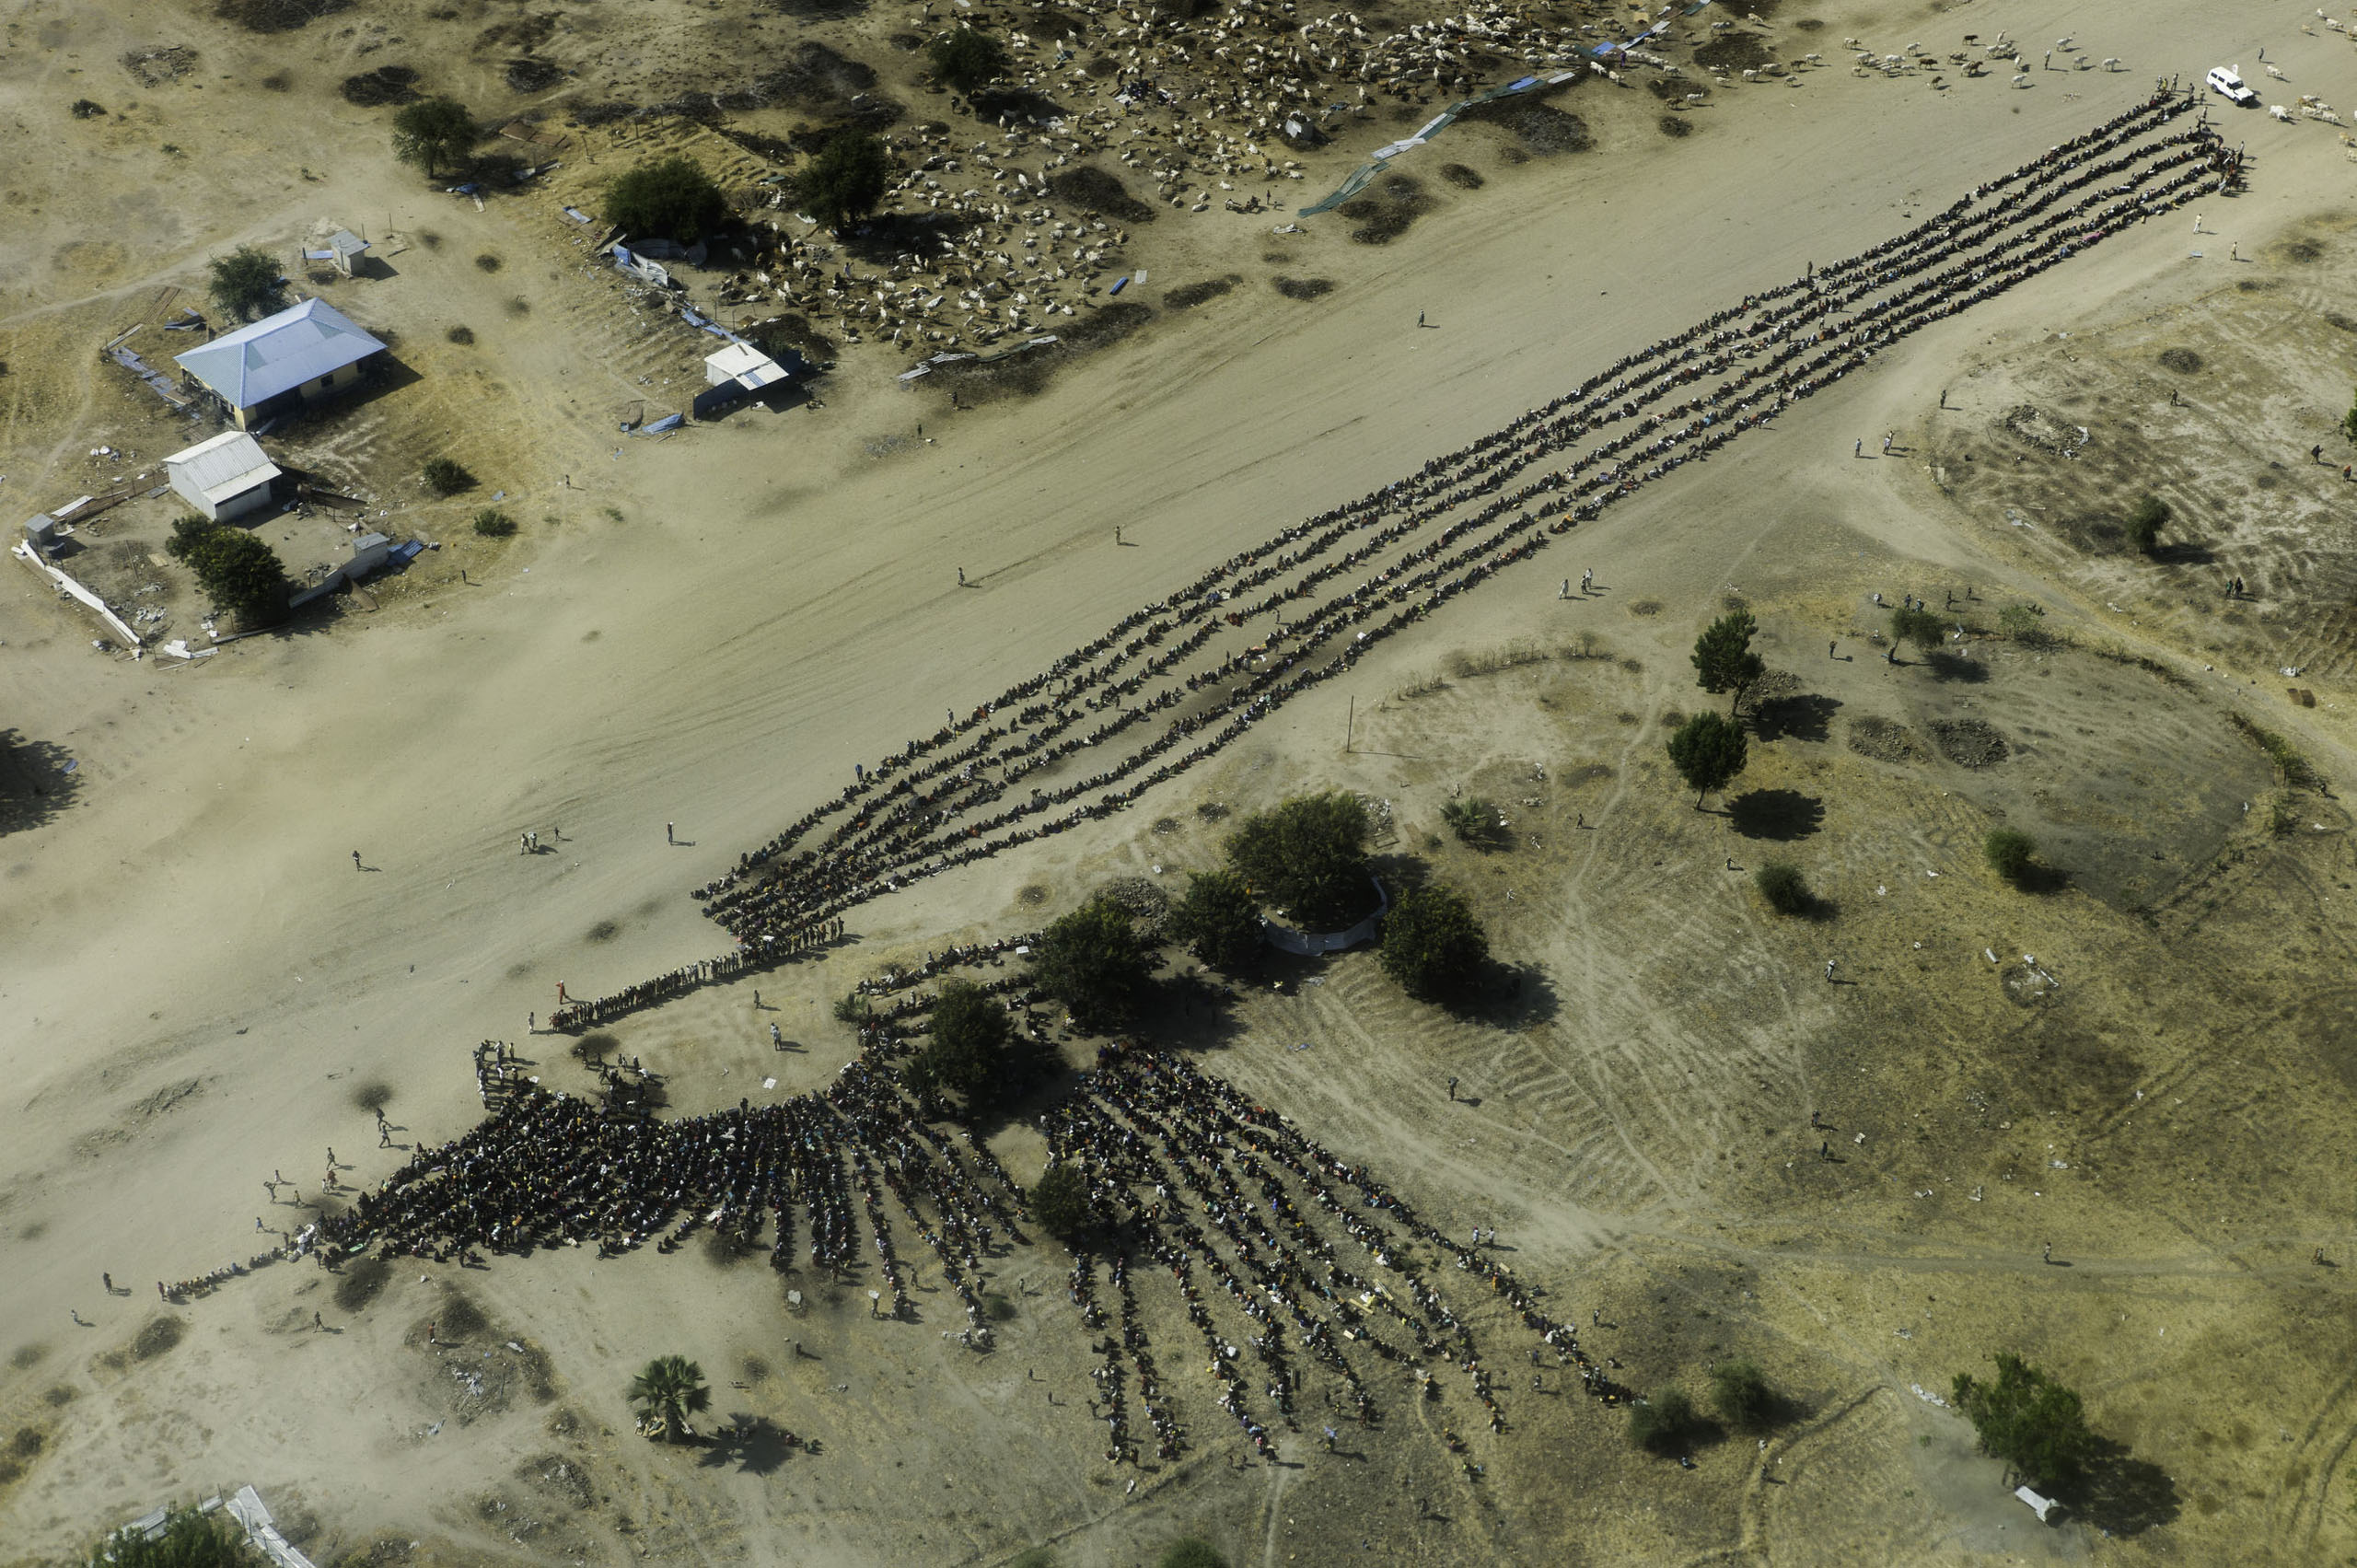 An aerial view of thousands of people waiting in line for food distribution in the otherwise empty and destroyed town of Leer, Unity State, South Sudan.